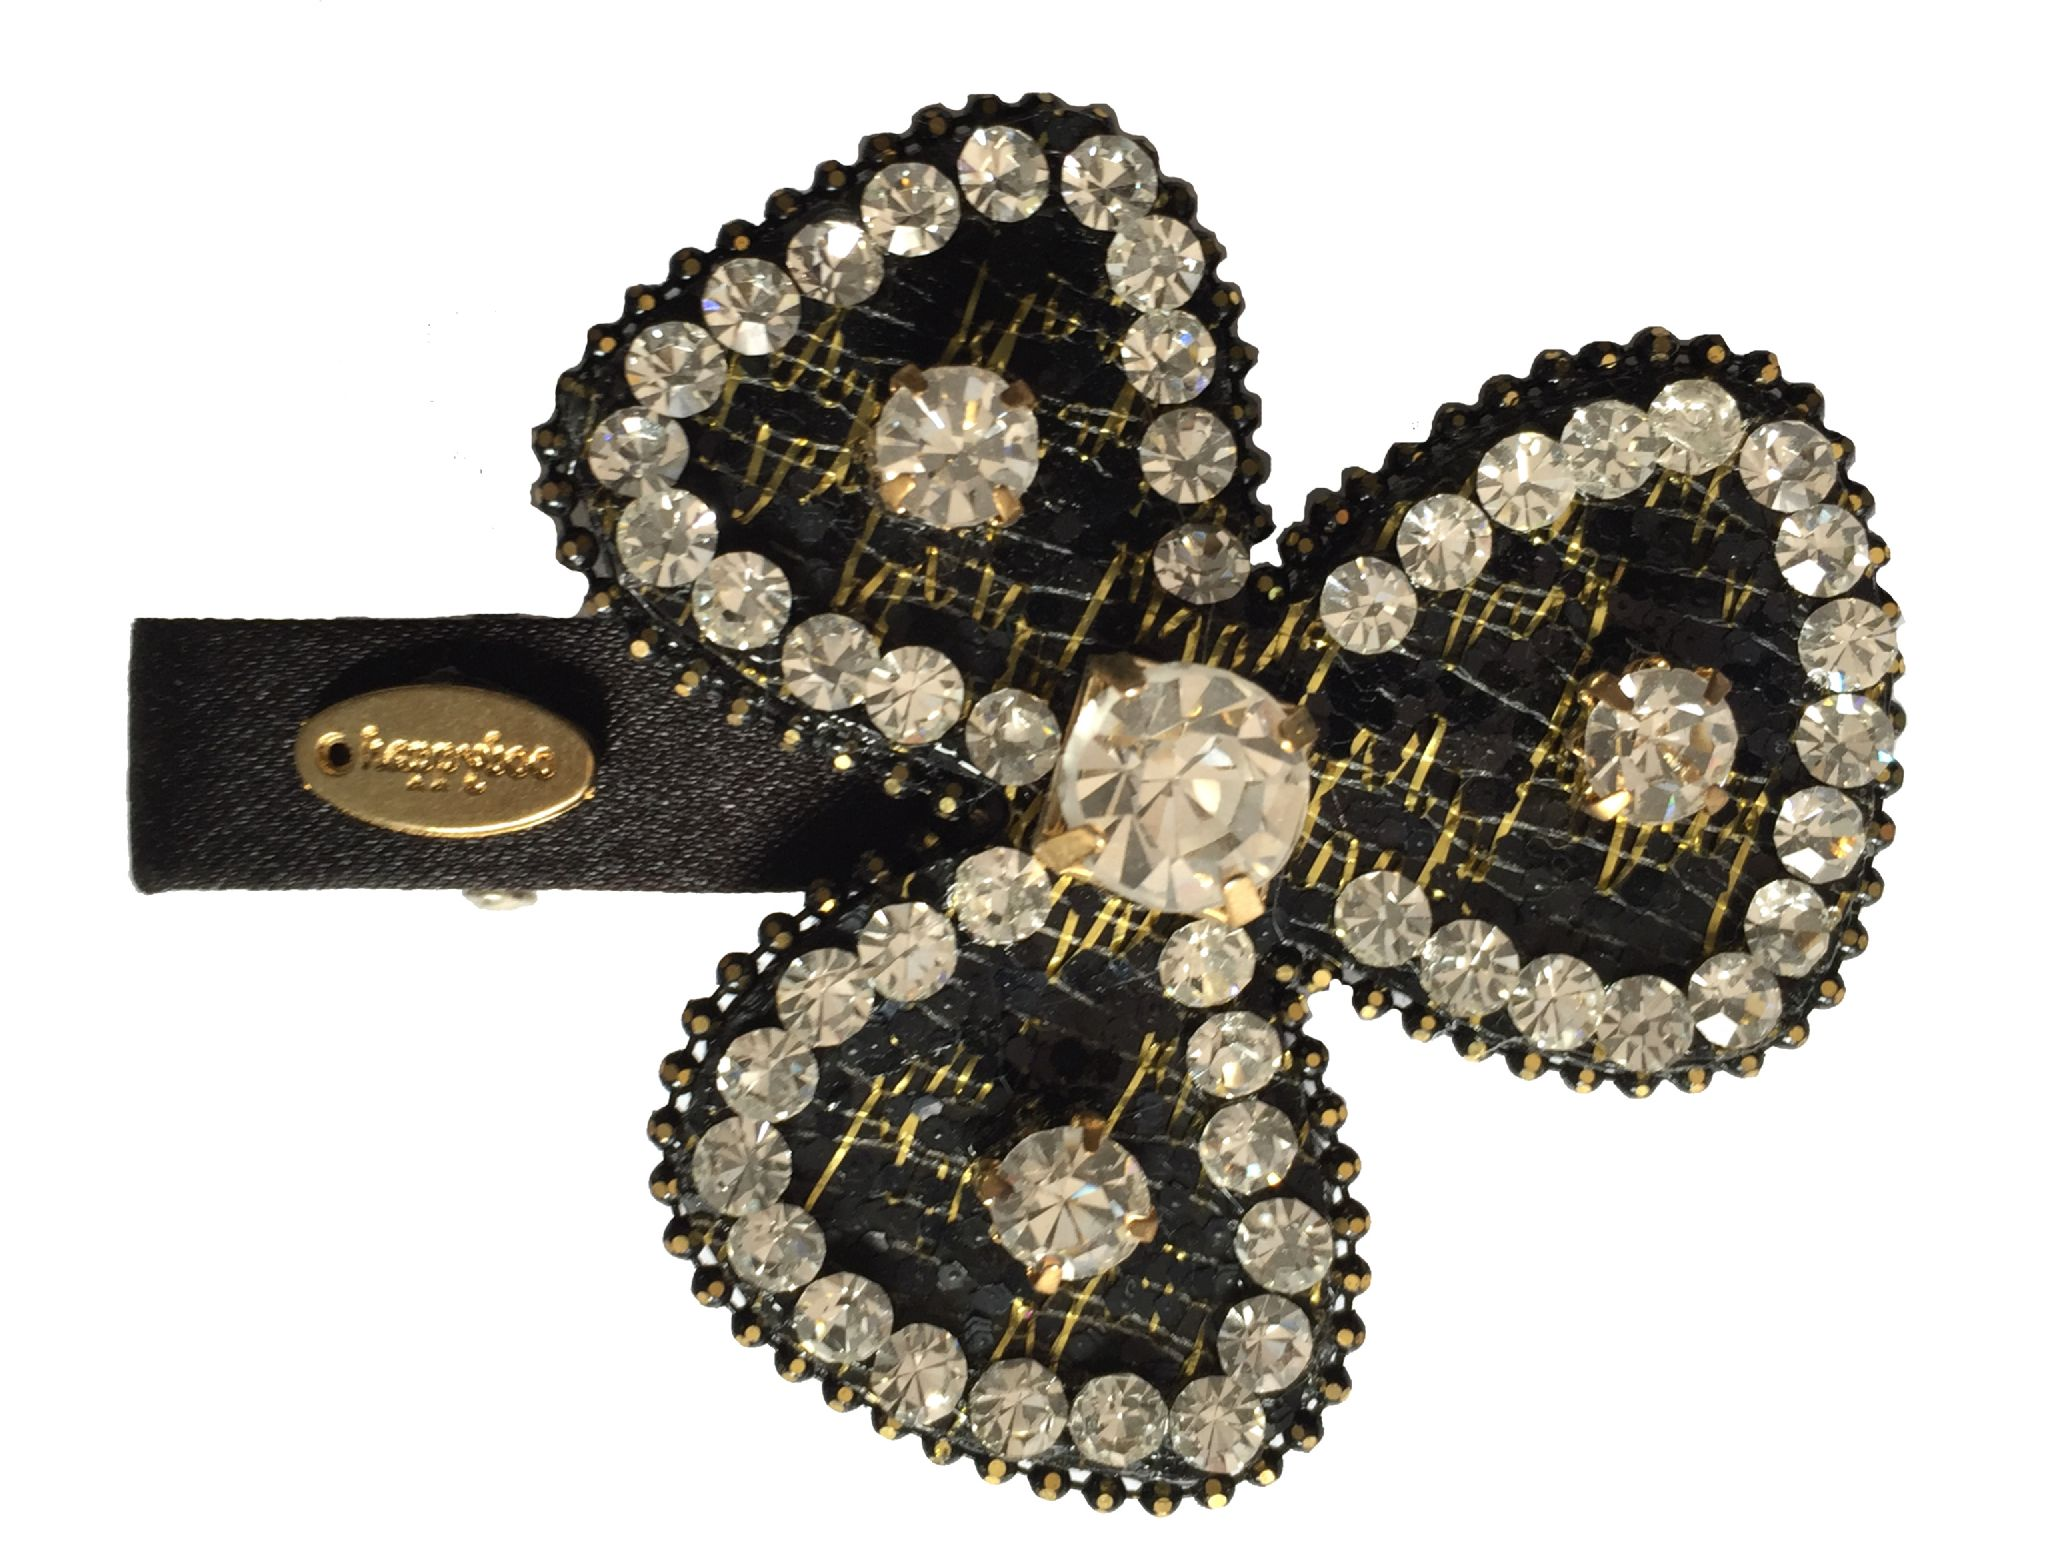 http://www.conmigolondon.co.uk/ekmps/shops/conmigo/images/al0011-flower-hair-slide-with-sparkling-sequins-black-silk-and-gold-15454-p.jpg